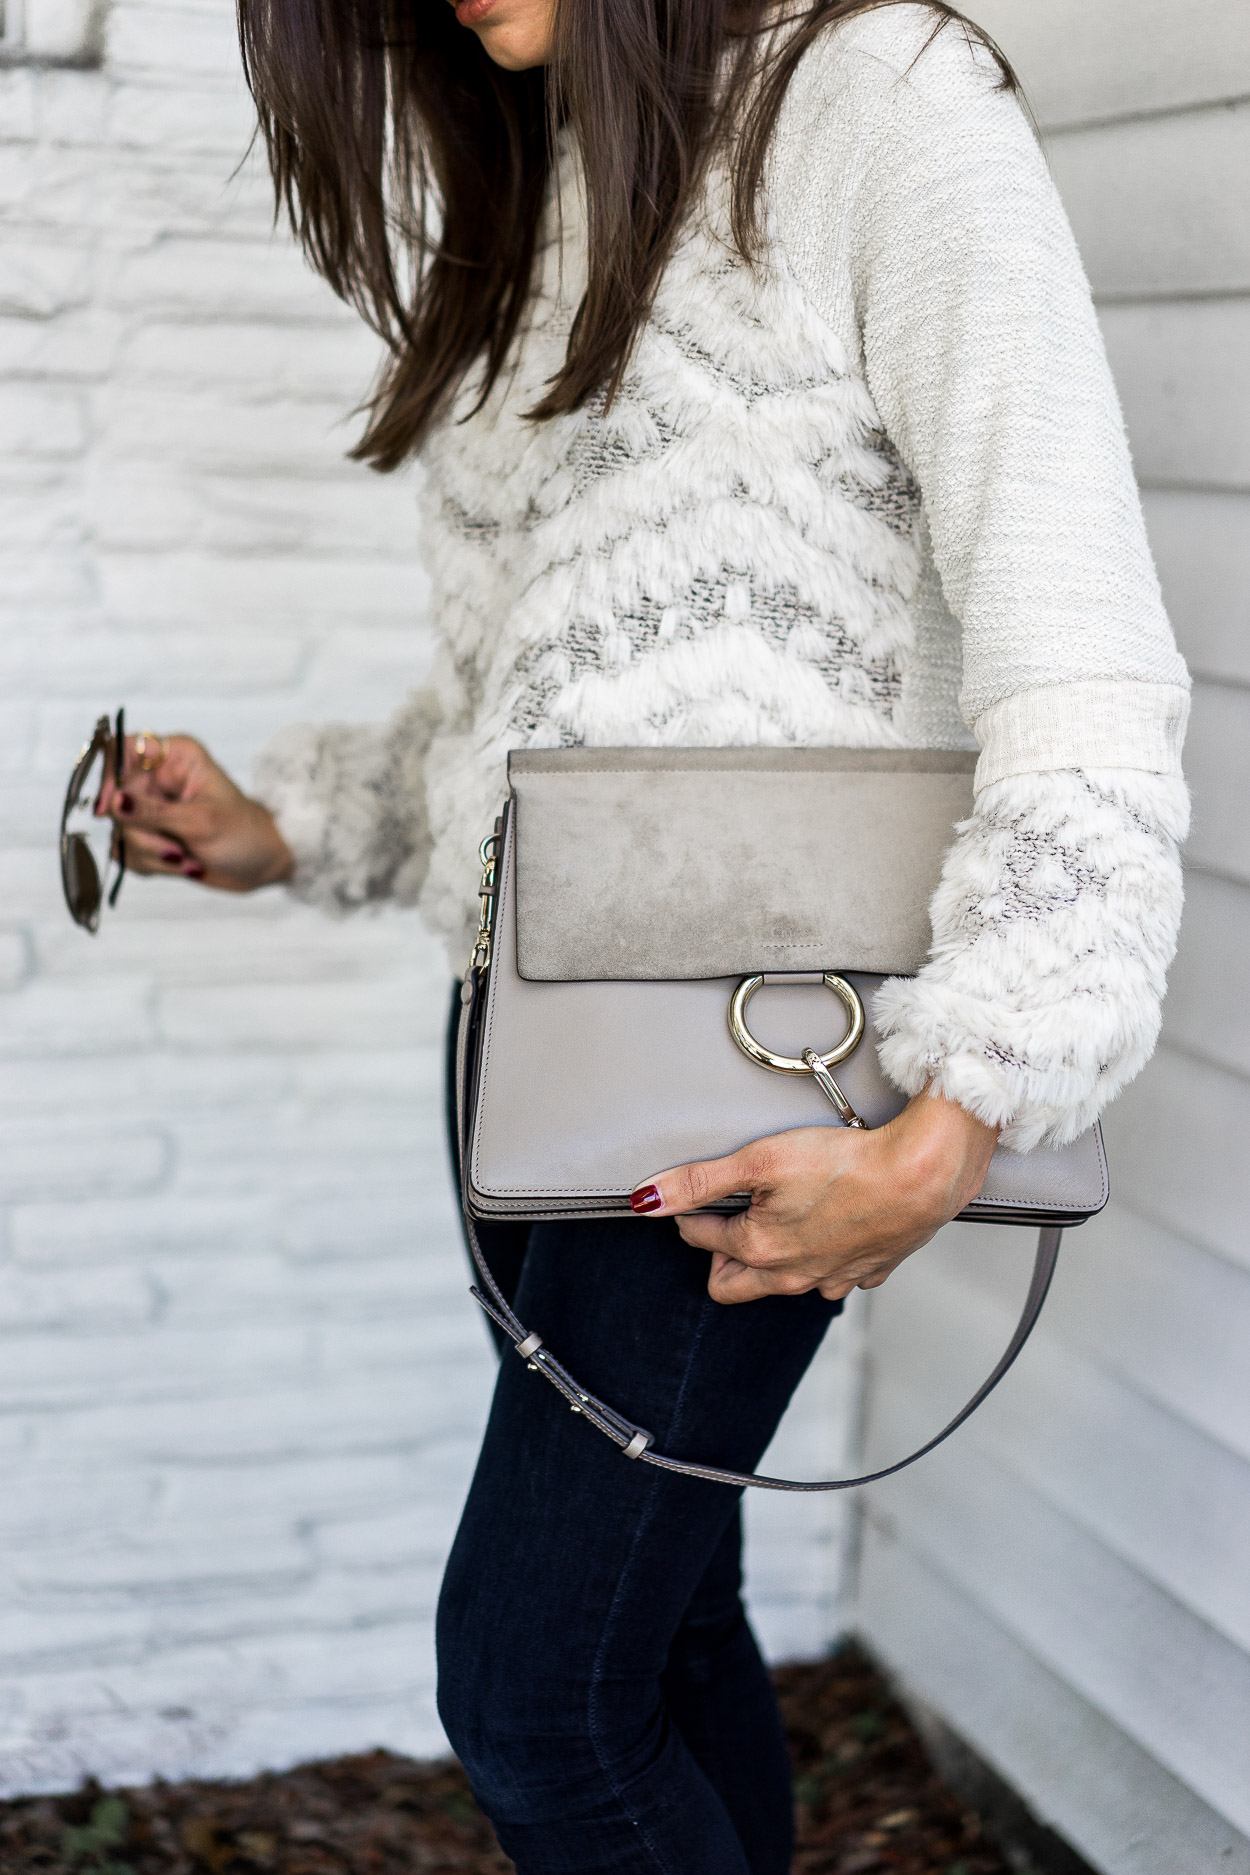 Pair your Chloe Faye bag with cozy sweaters during the holidays